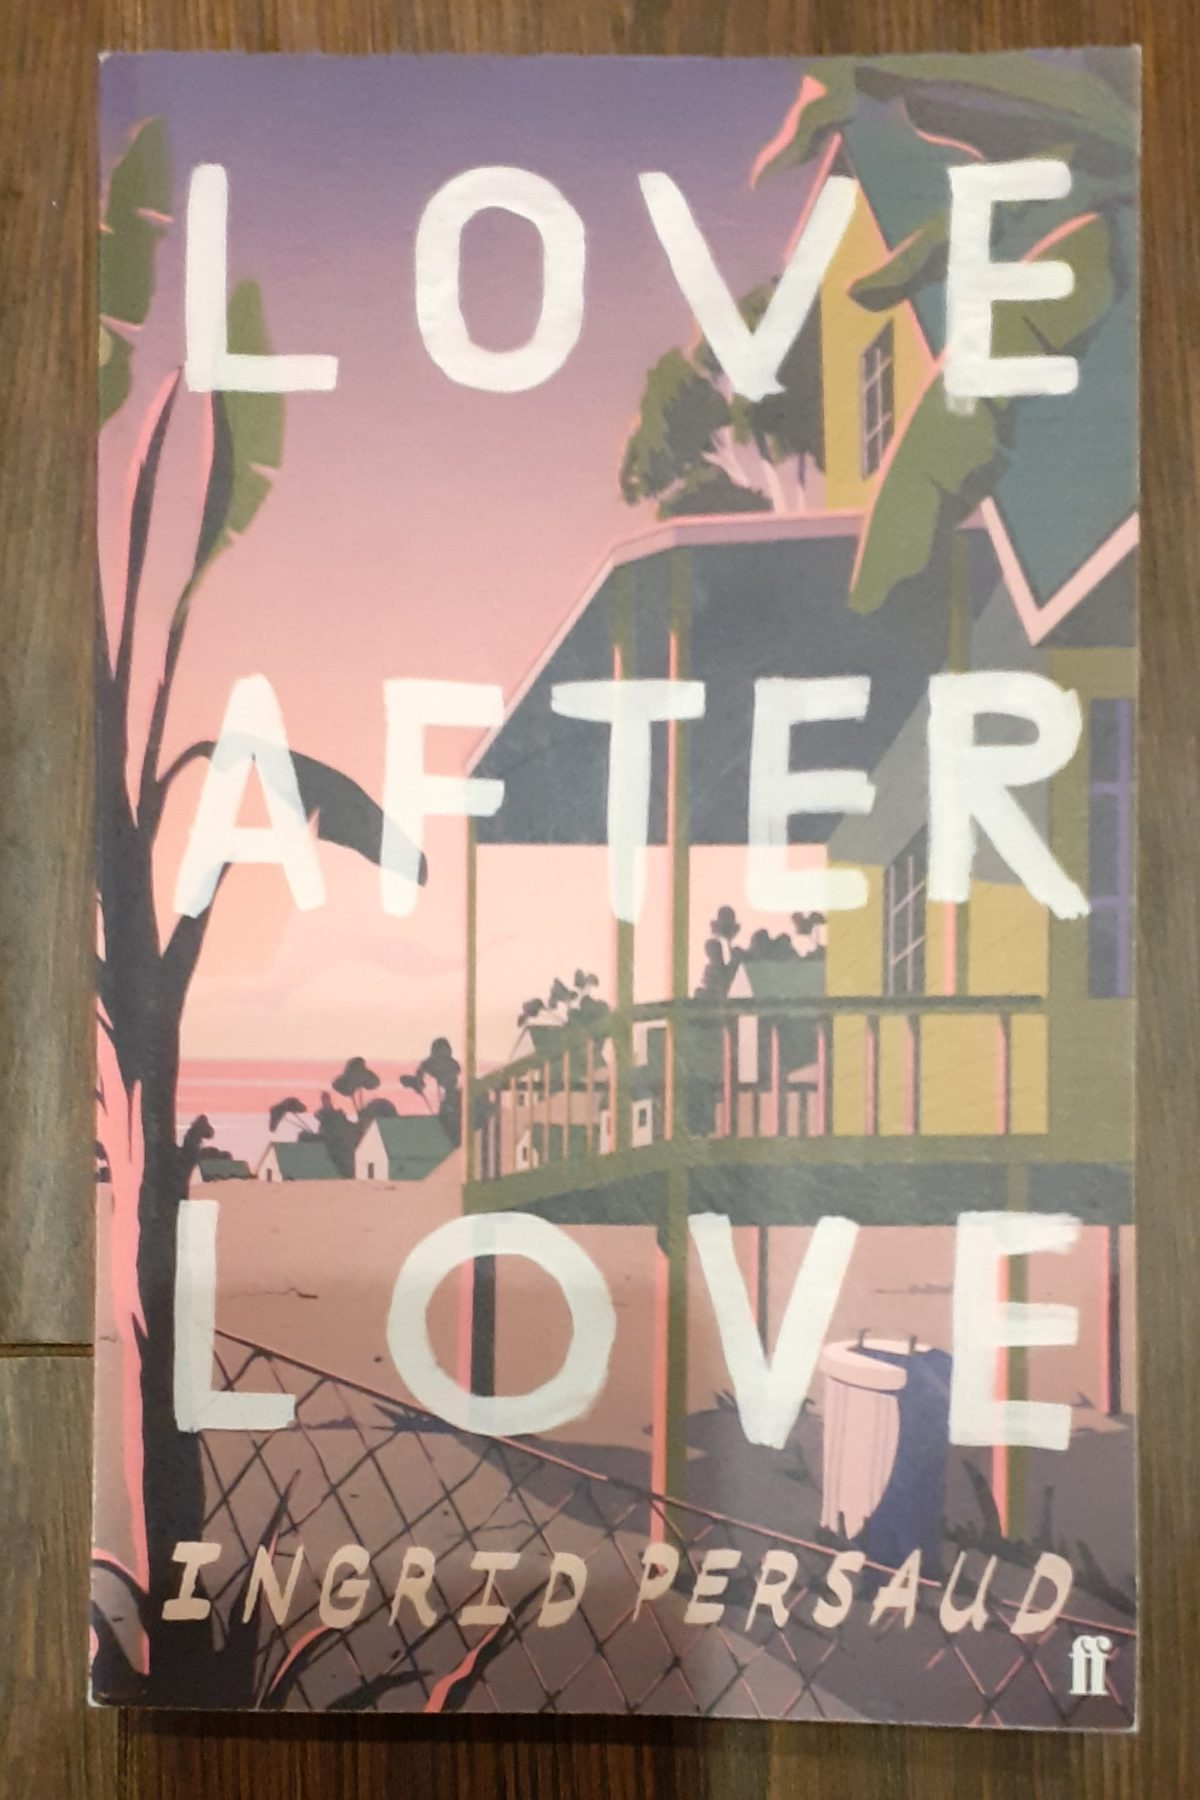 Book review: Love after Love, by Ingrid Persuad